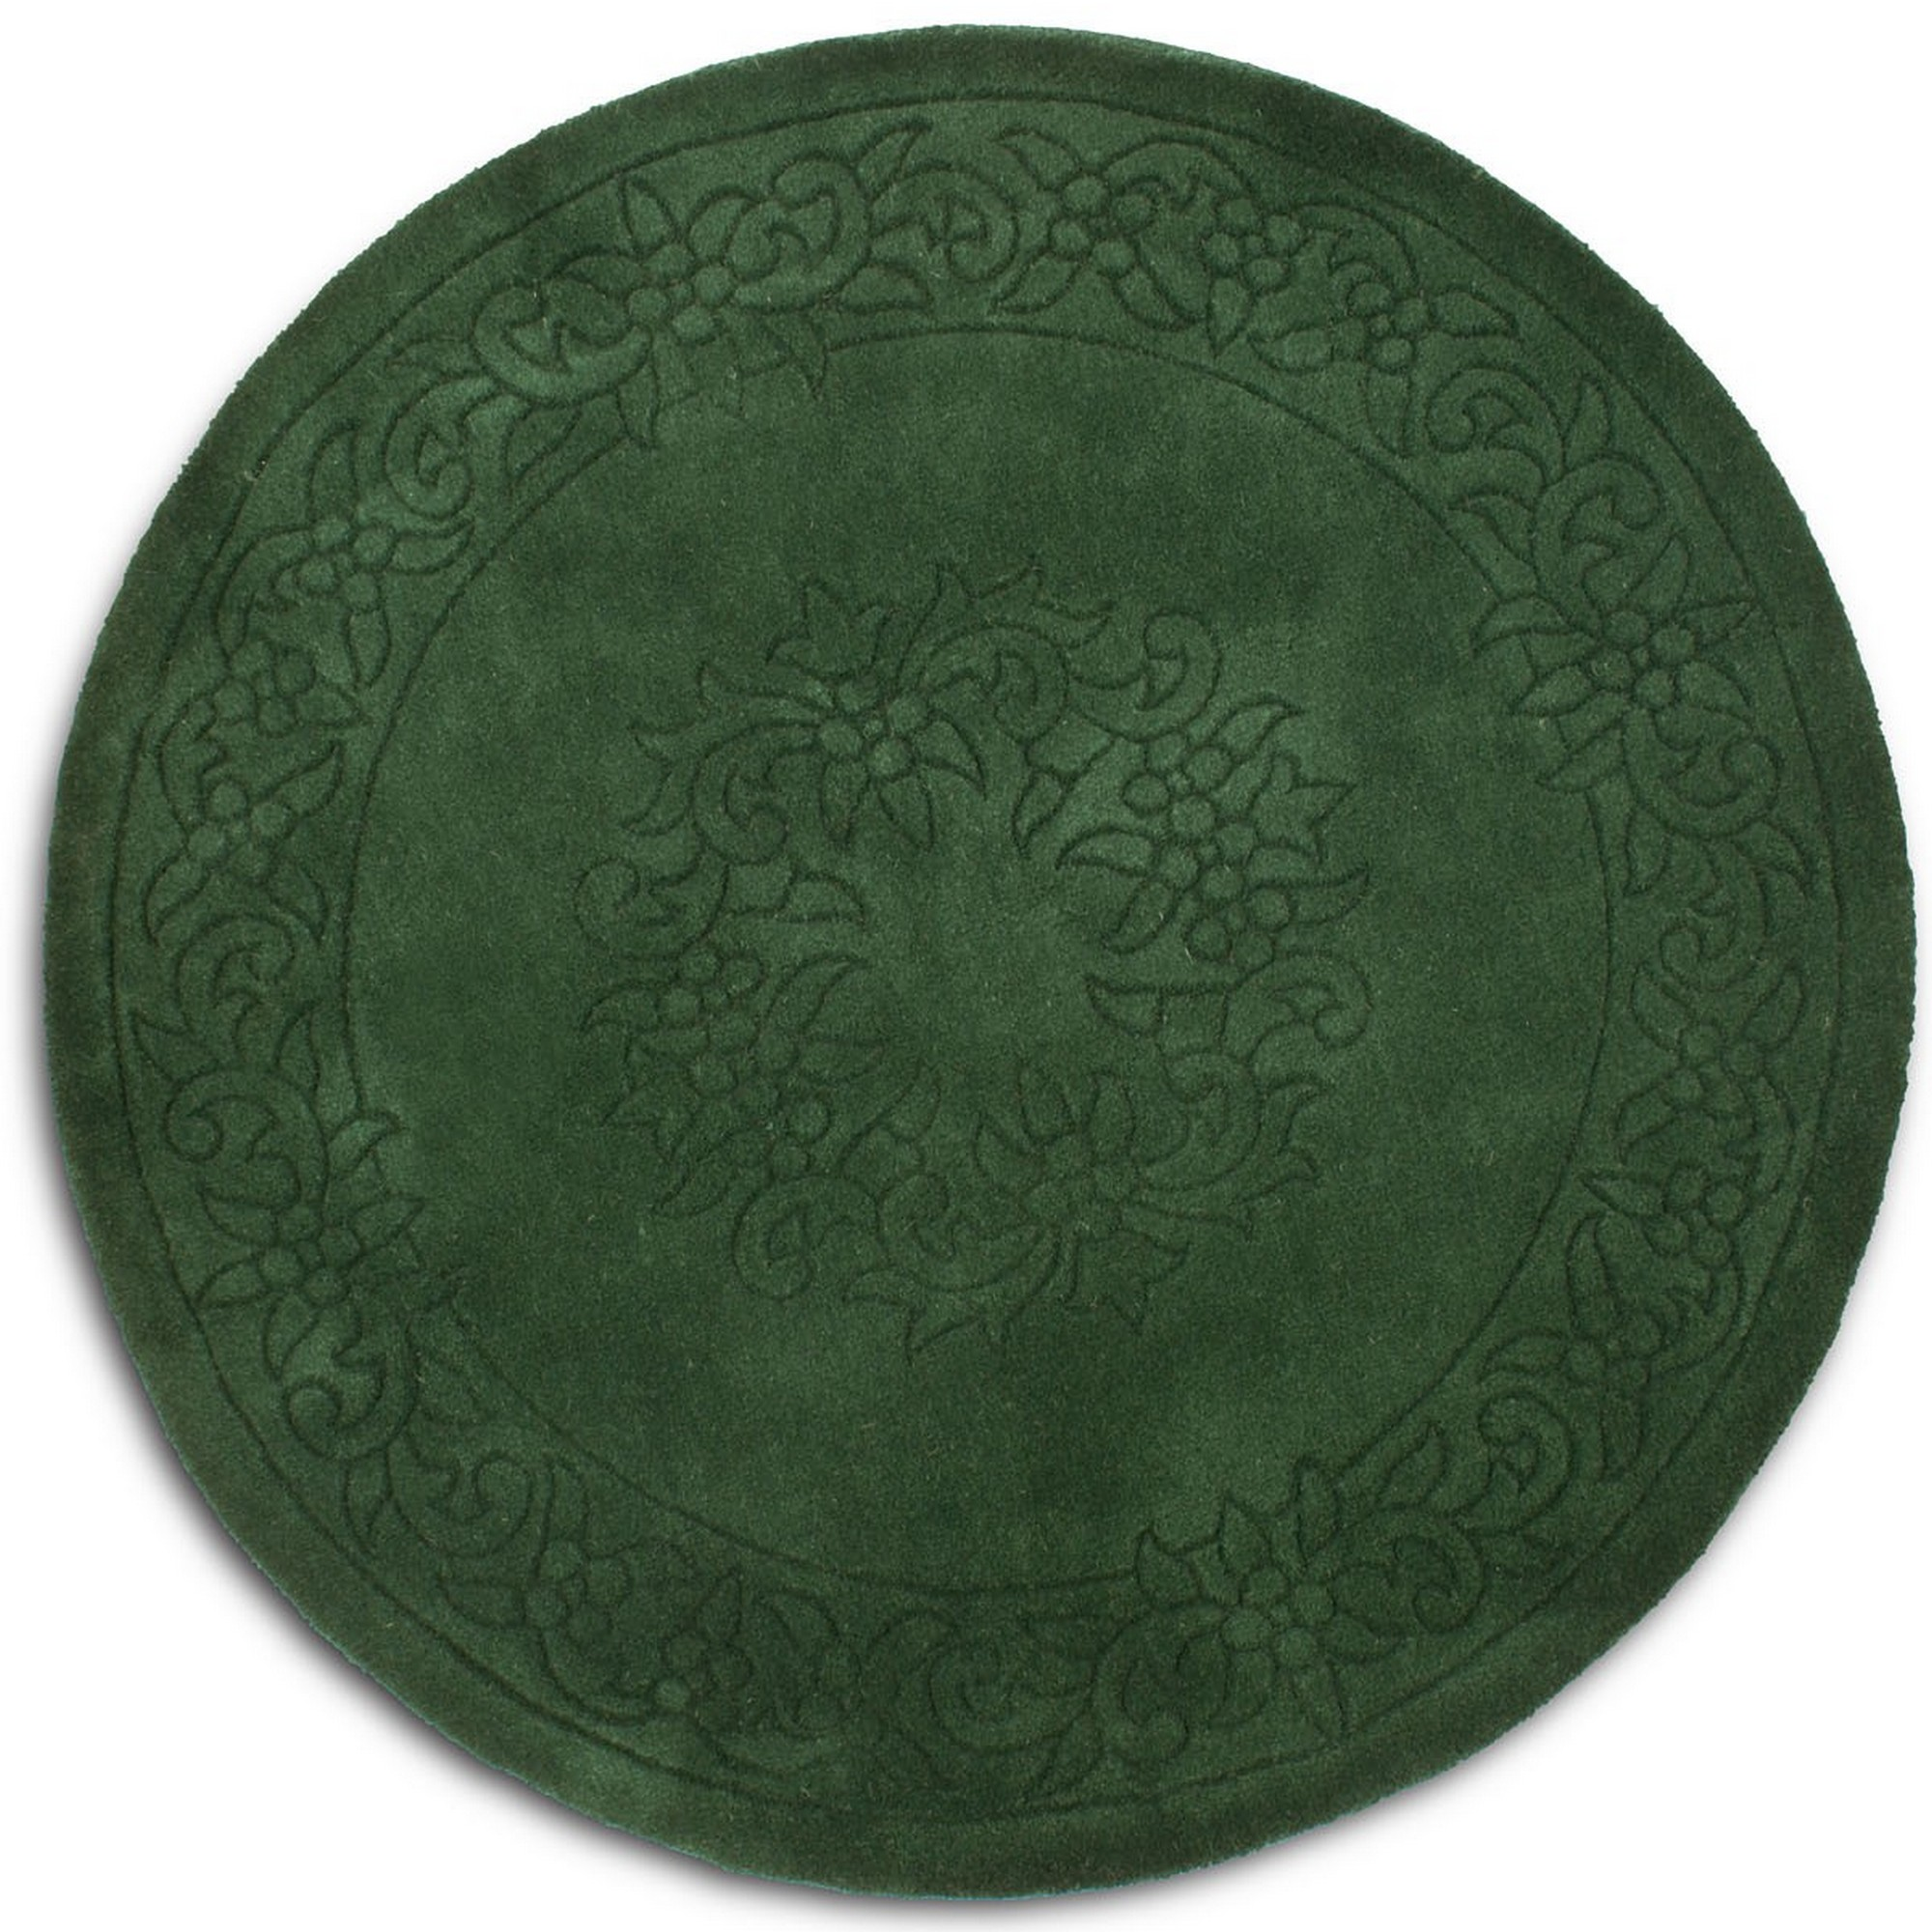 Royale Circular Rugs - Traditional Indian Wool in Dark Green